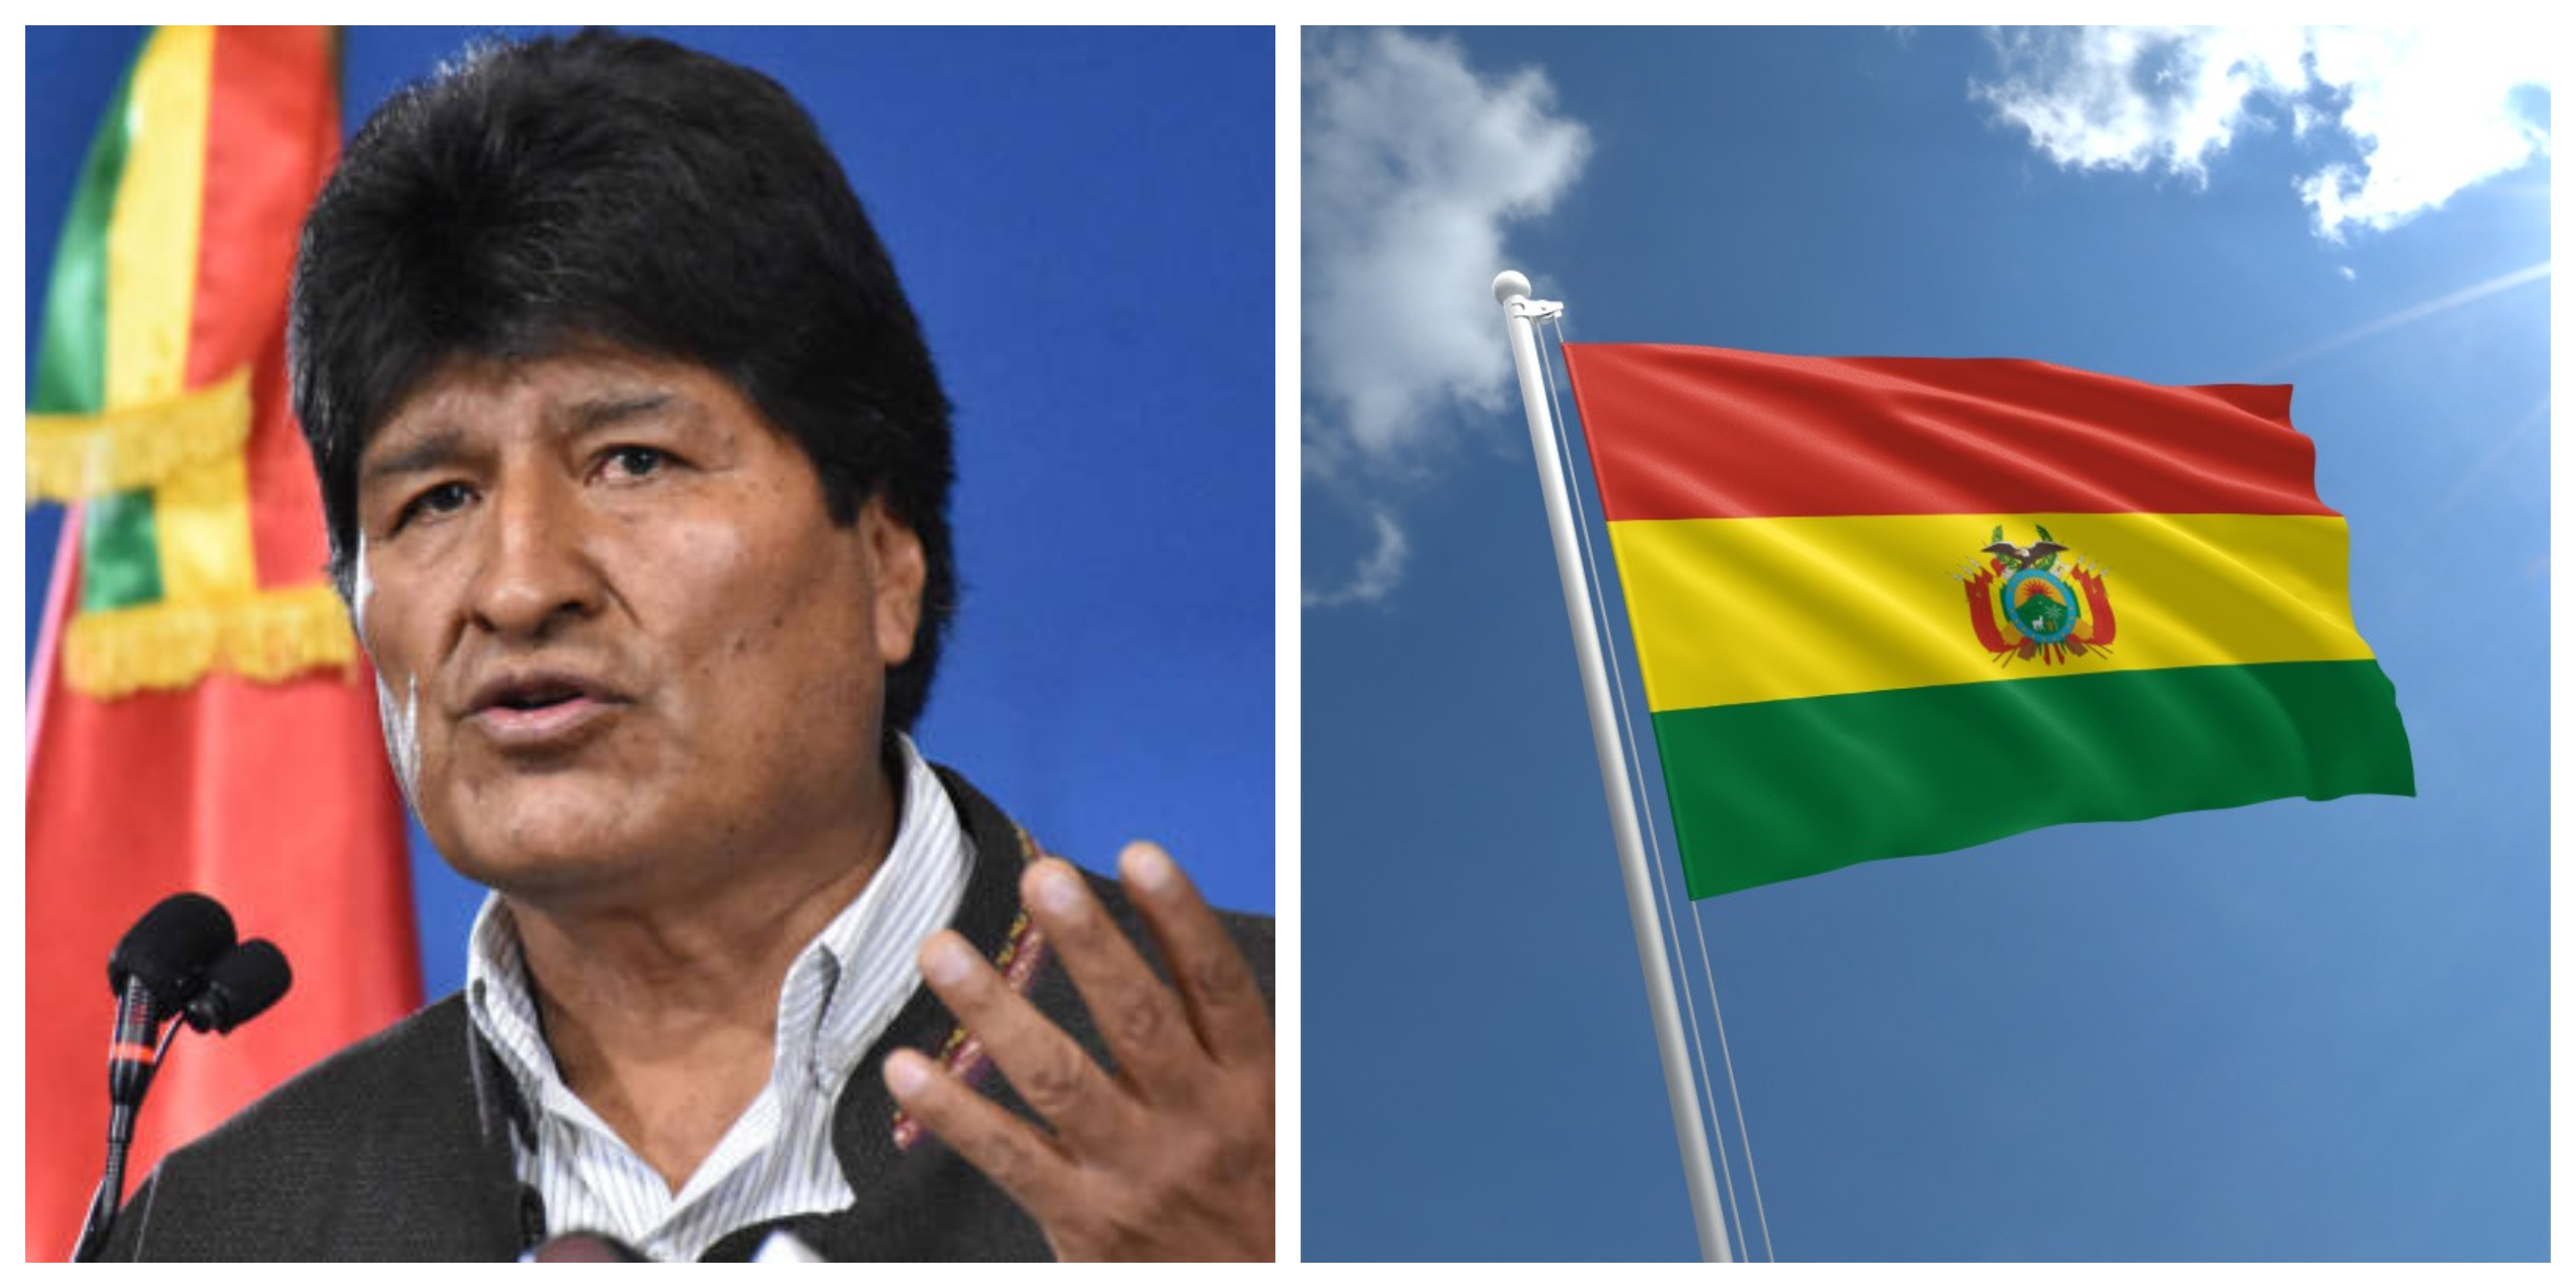 Photo collage of Evo Morales Bolivia Flag